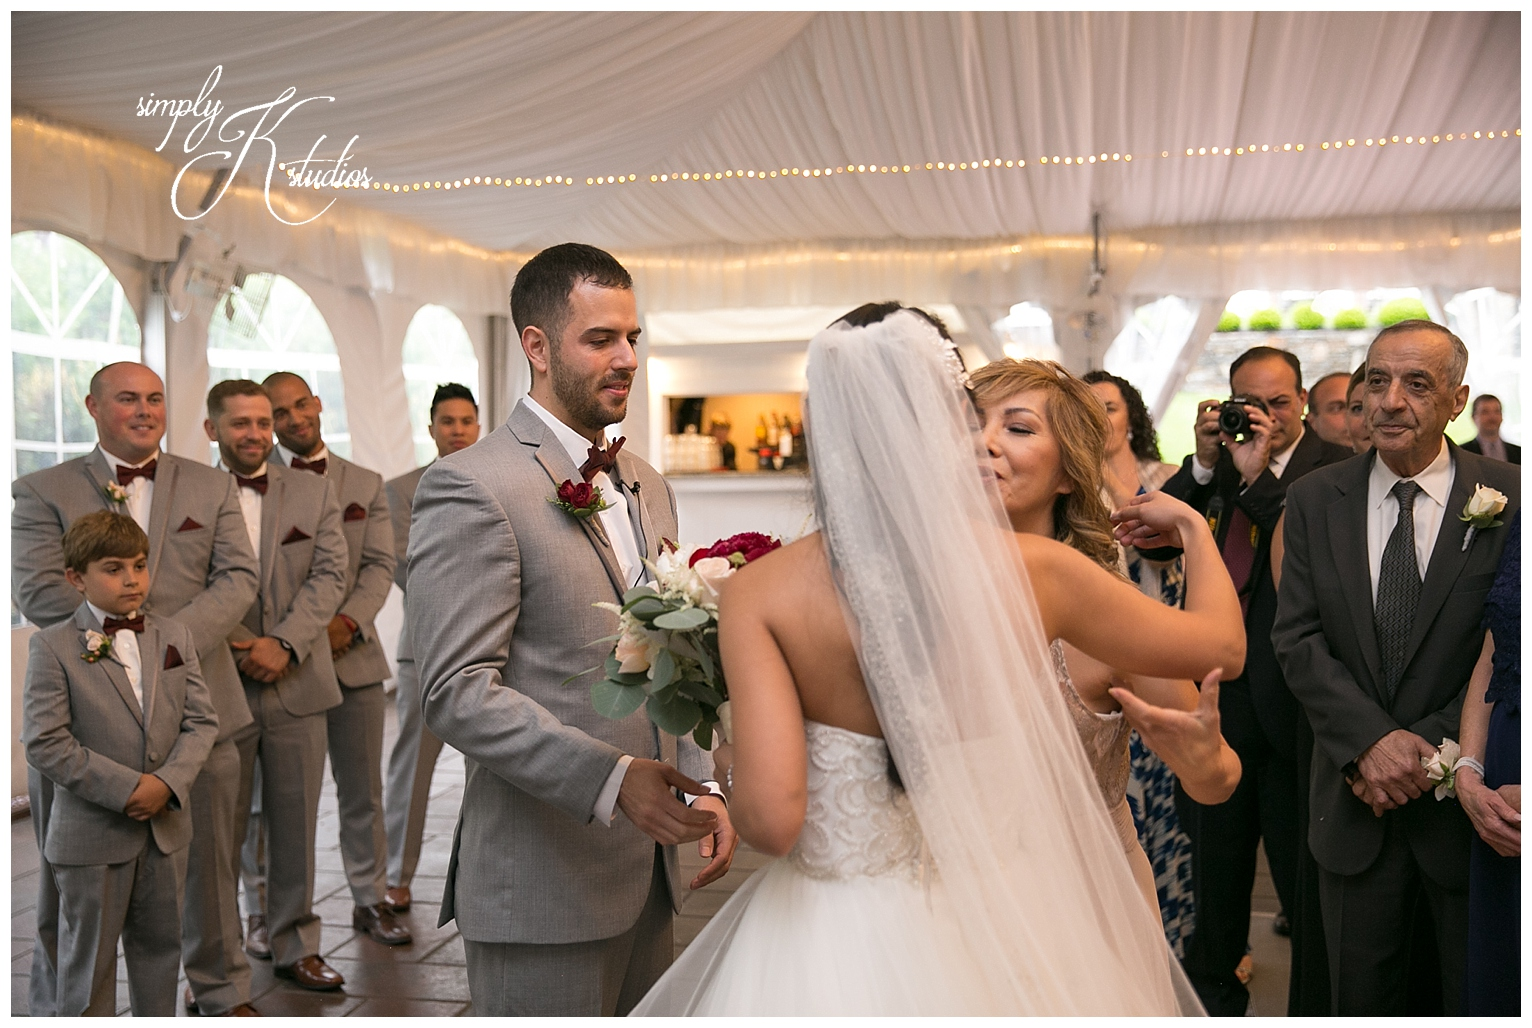 Wedding Ceremony Photos at The Publick House.jpg